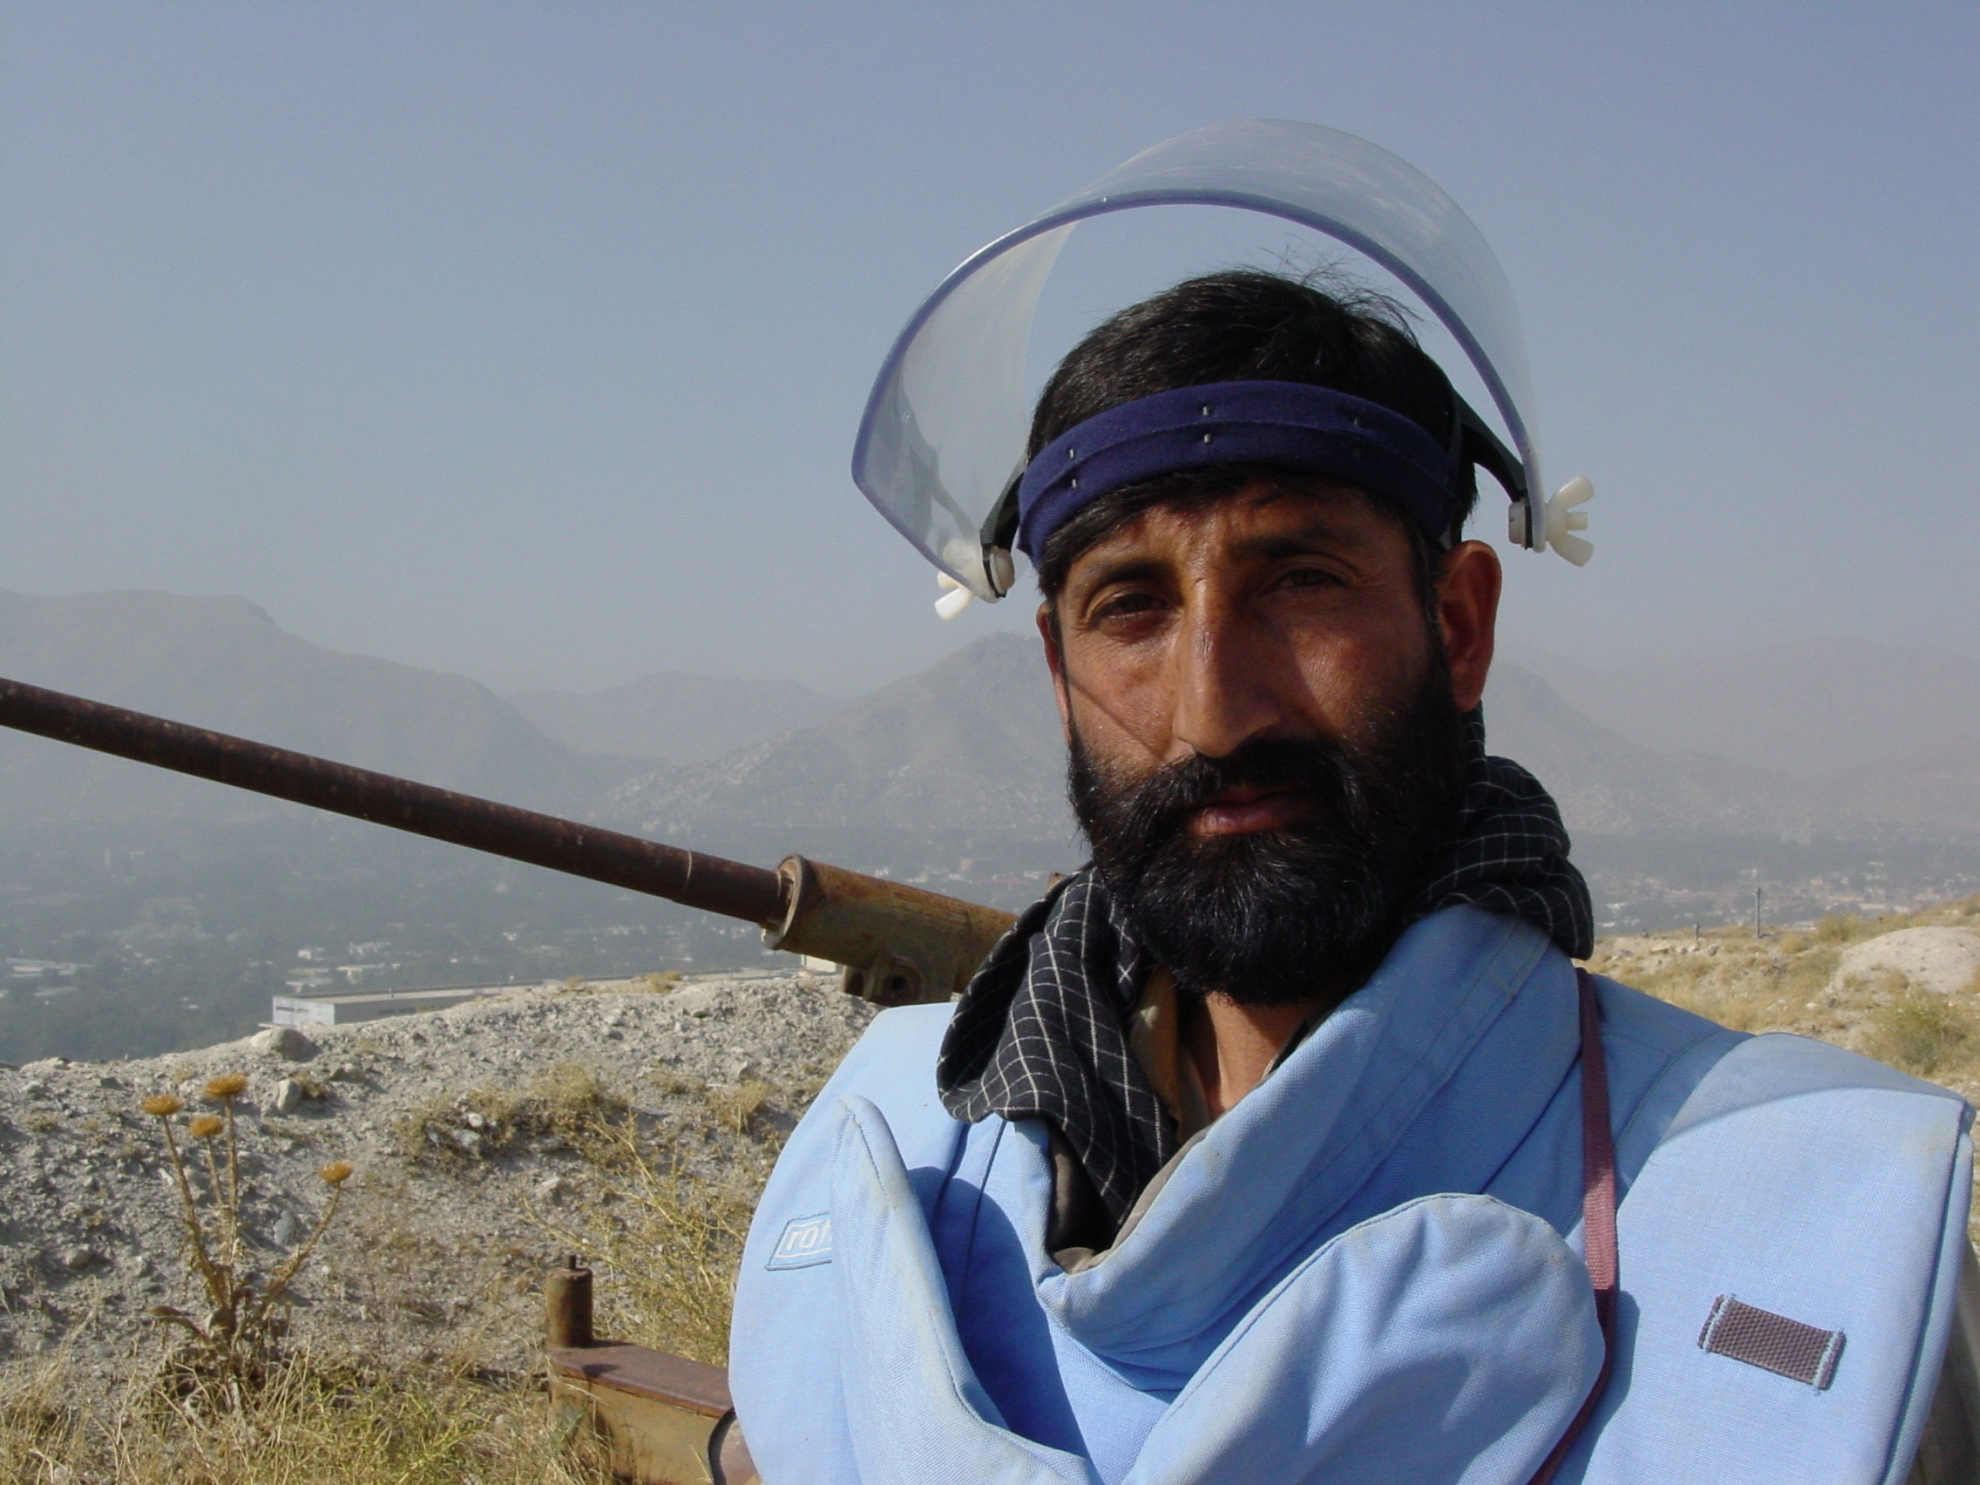 """""""Every time I clear a mine, I might rescue a child from being wounded or killed"""", says Hamid. Photo: Jens Kjær Jensen, 2003"""